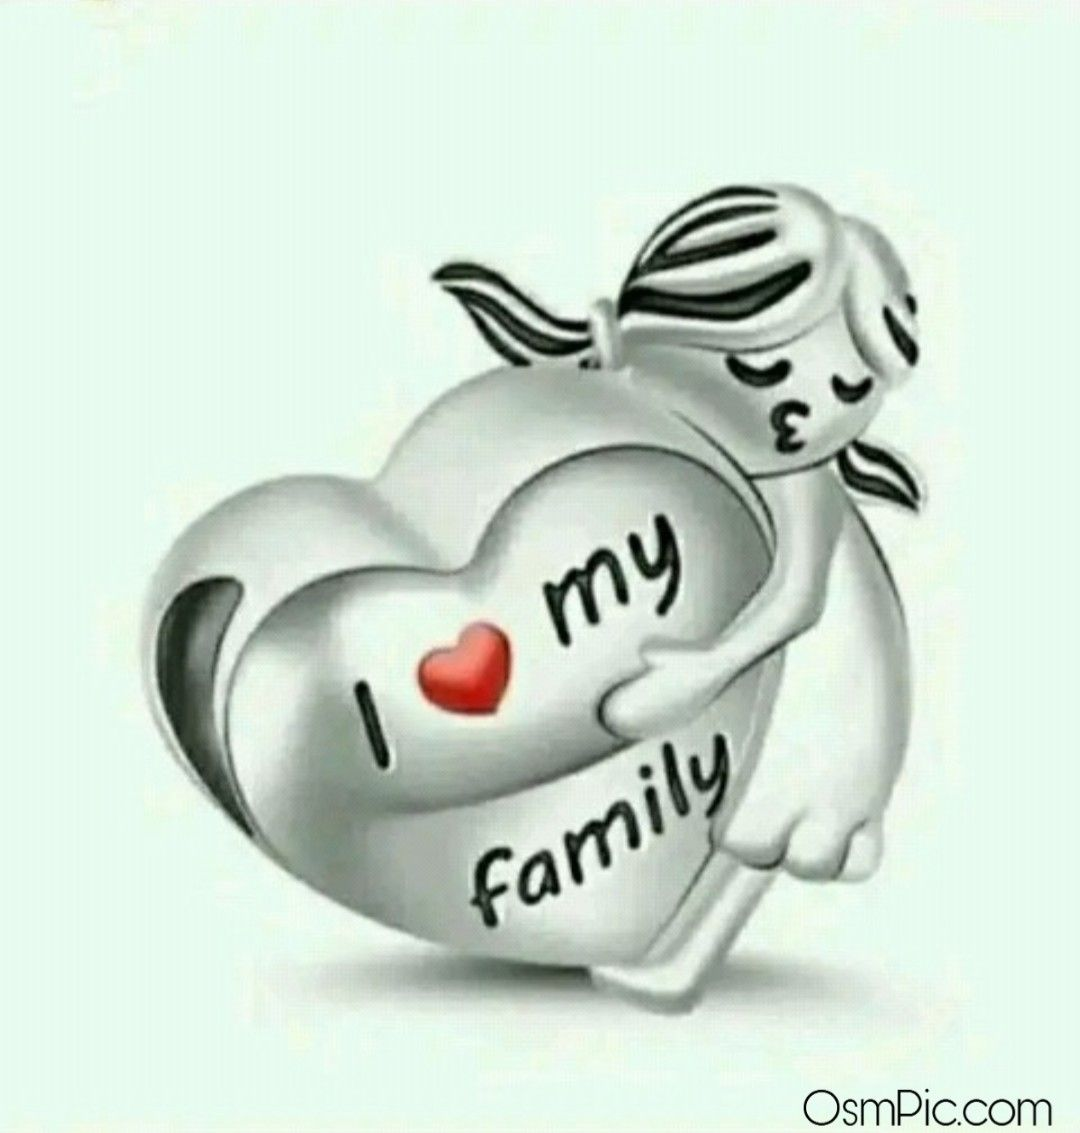 Whatsapp Dp Family Quotes Download In 2021 Best Whatsapp Dp Whatsapp Dp Images Whatsapp Dp